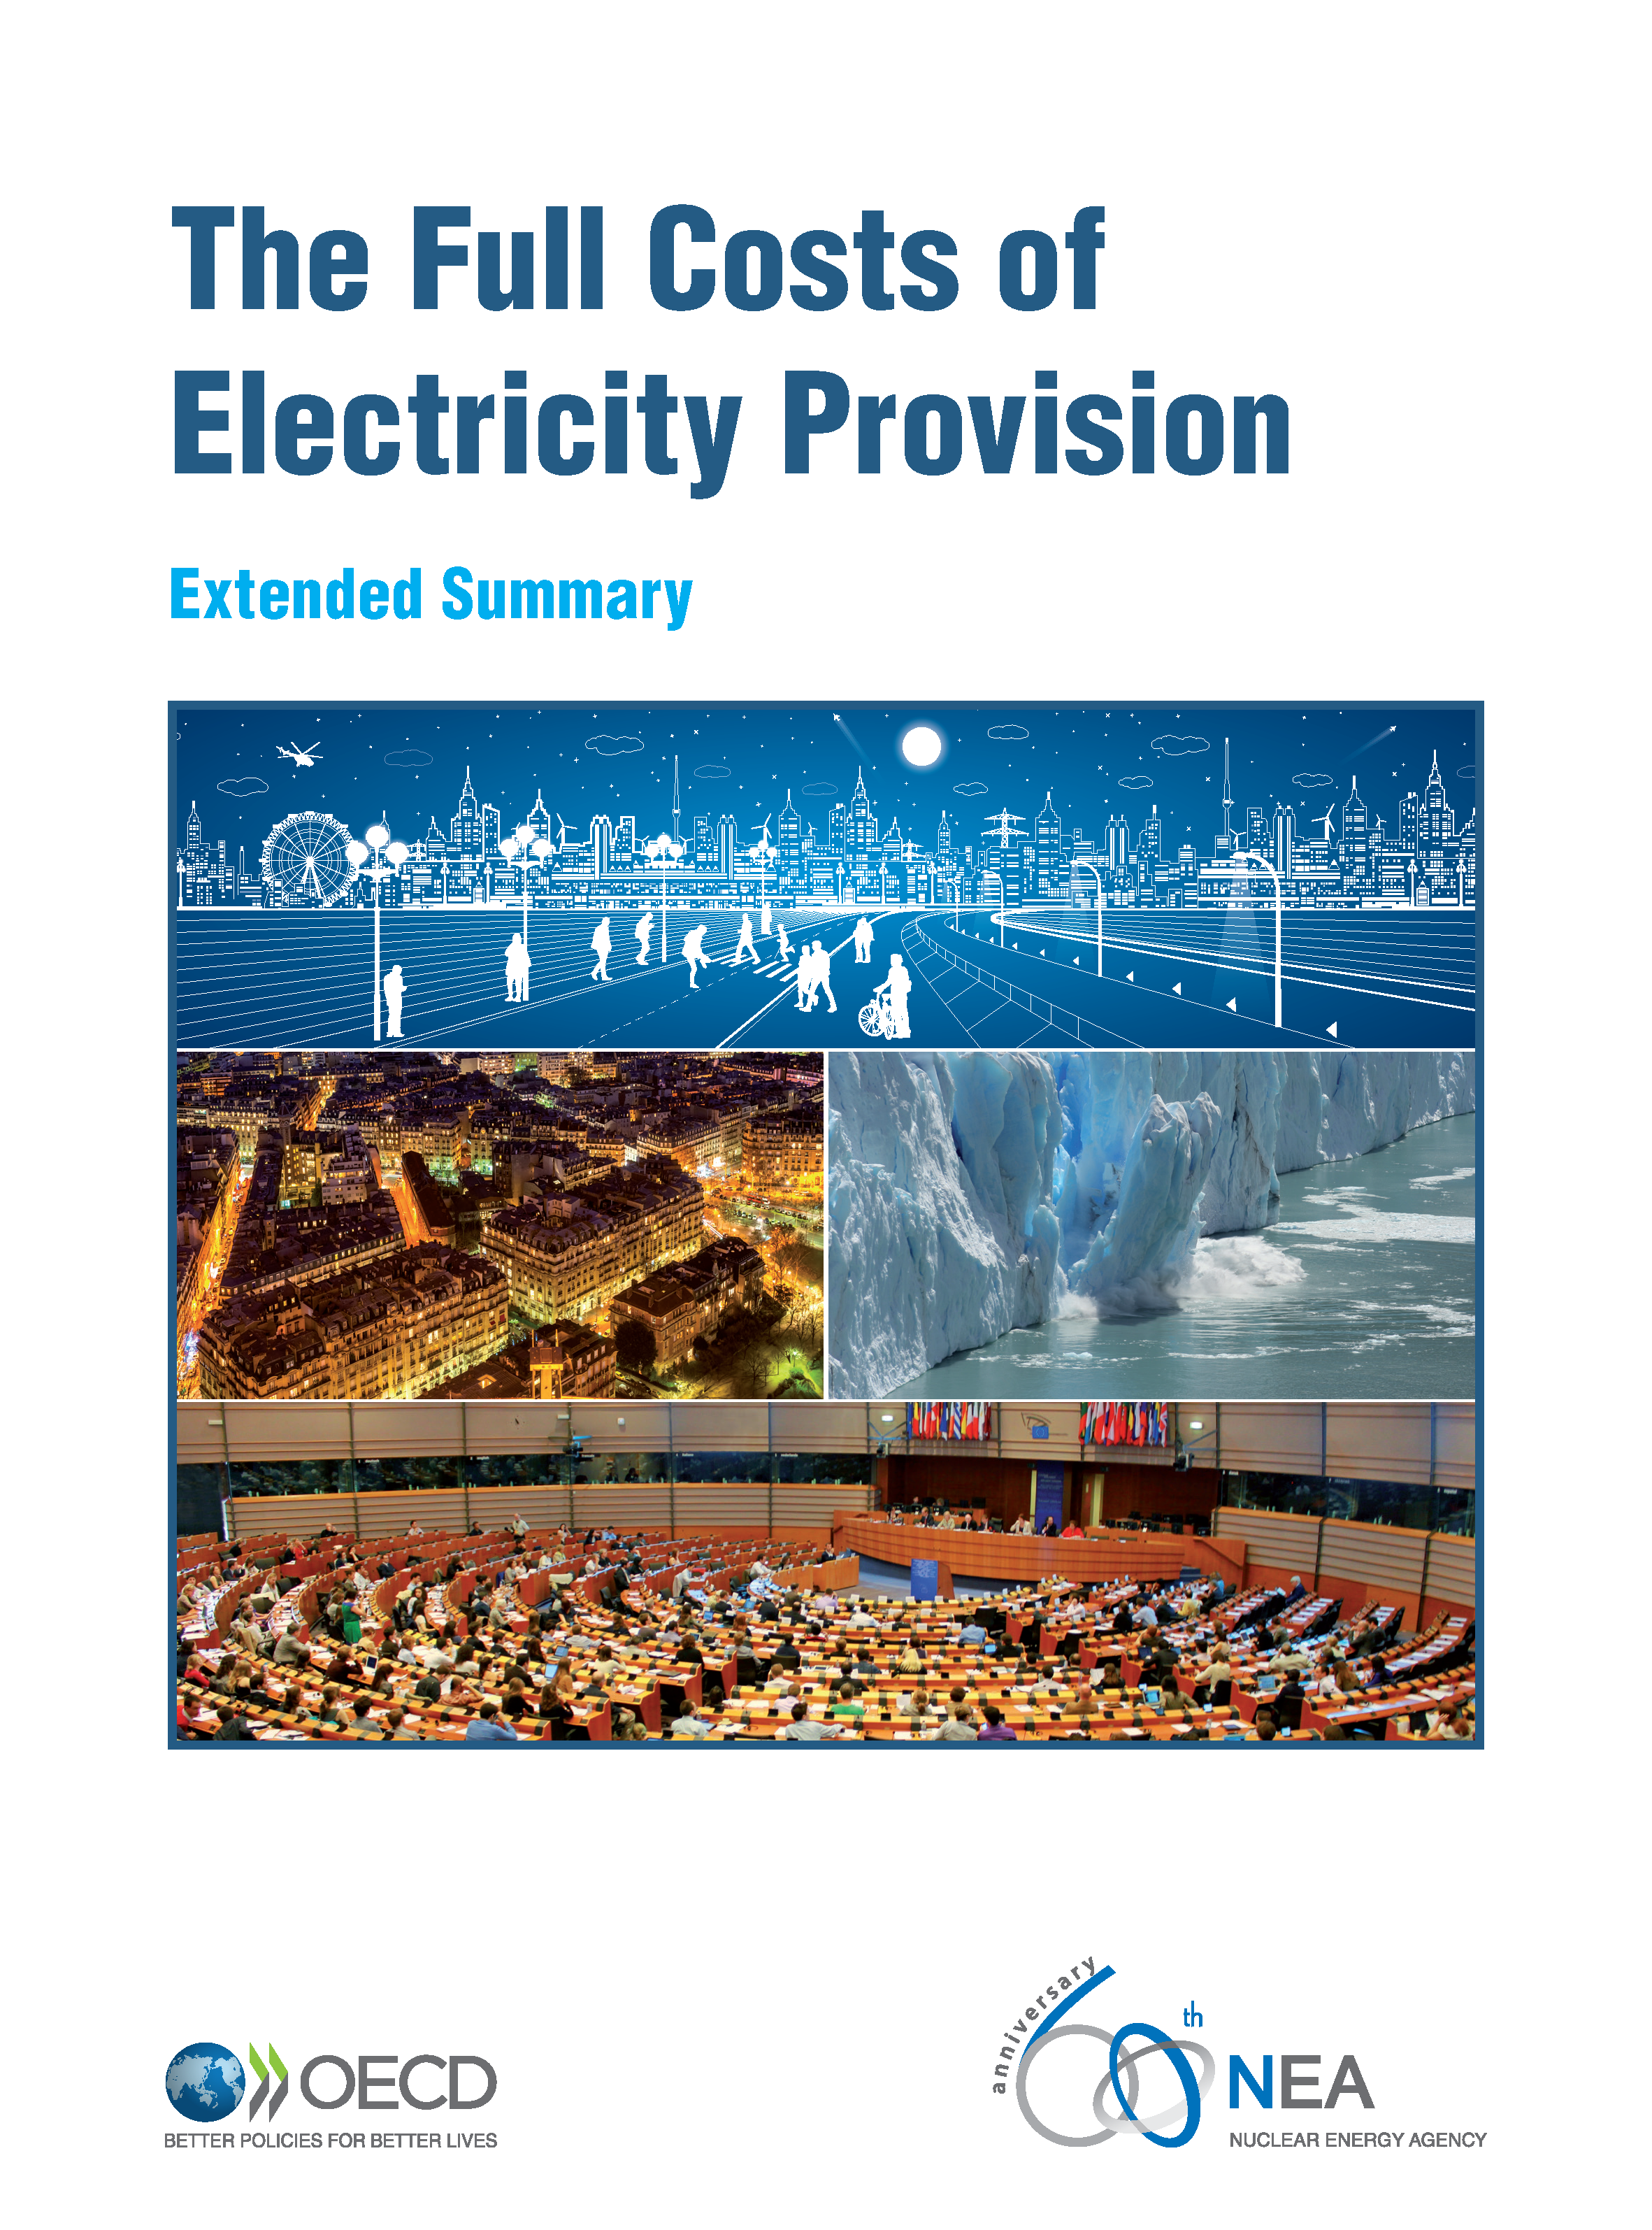 The Full Costs of Electricity Provision: Extended Summary